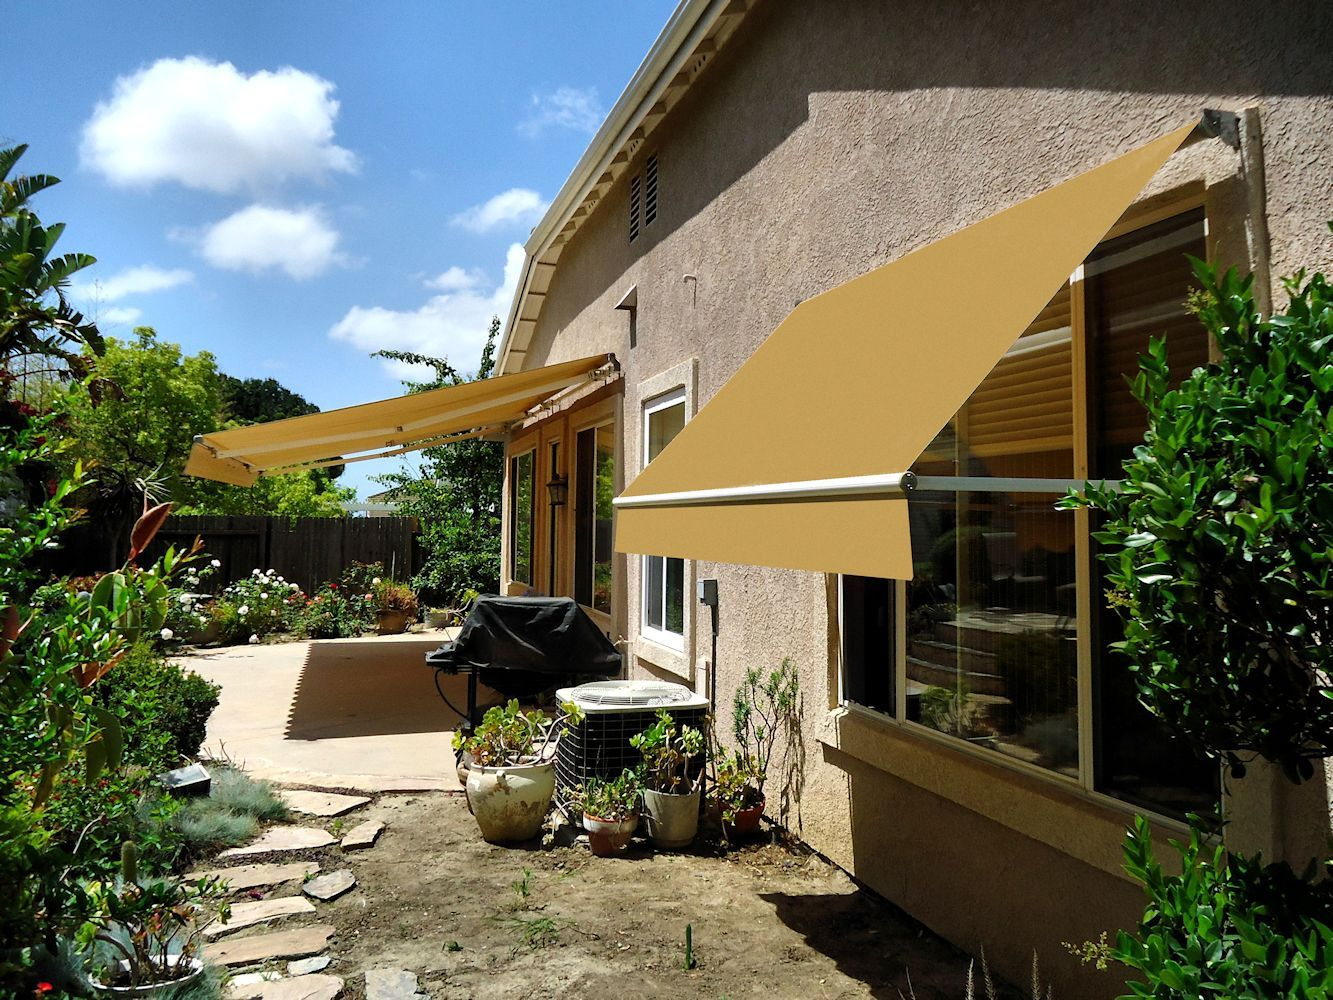 Retractable Awnings By Superior Awning Let The Sun Shine Awning Custom Awnings Retractable Awning